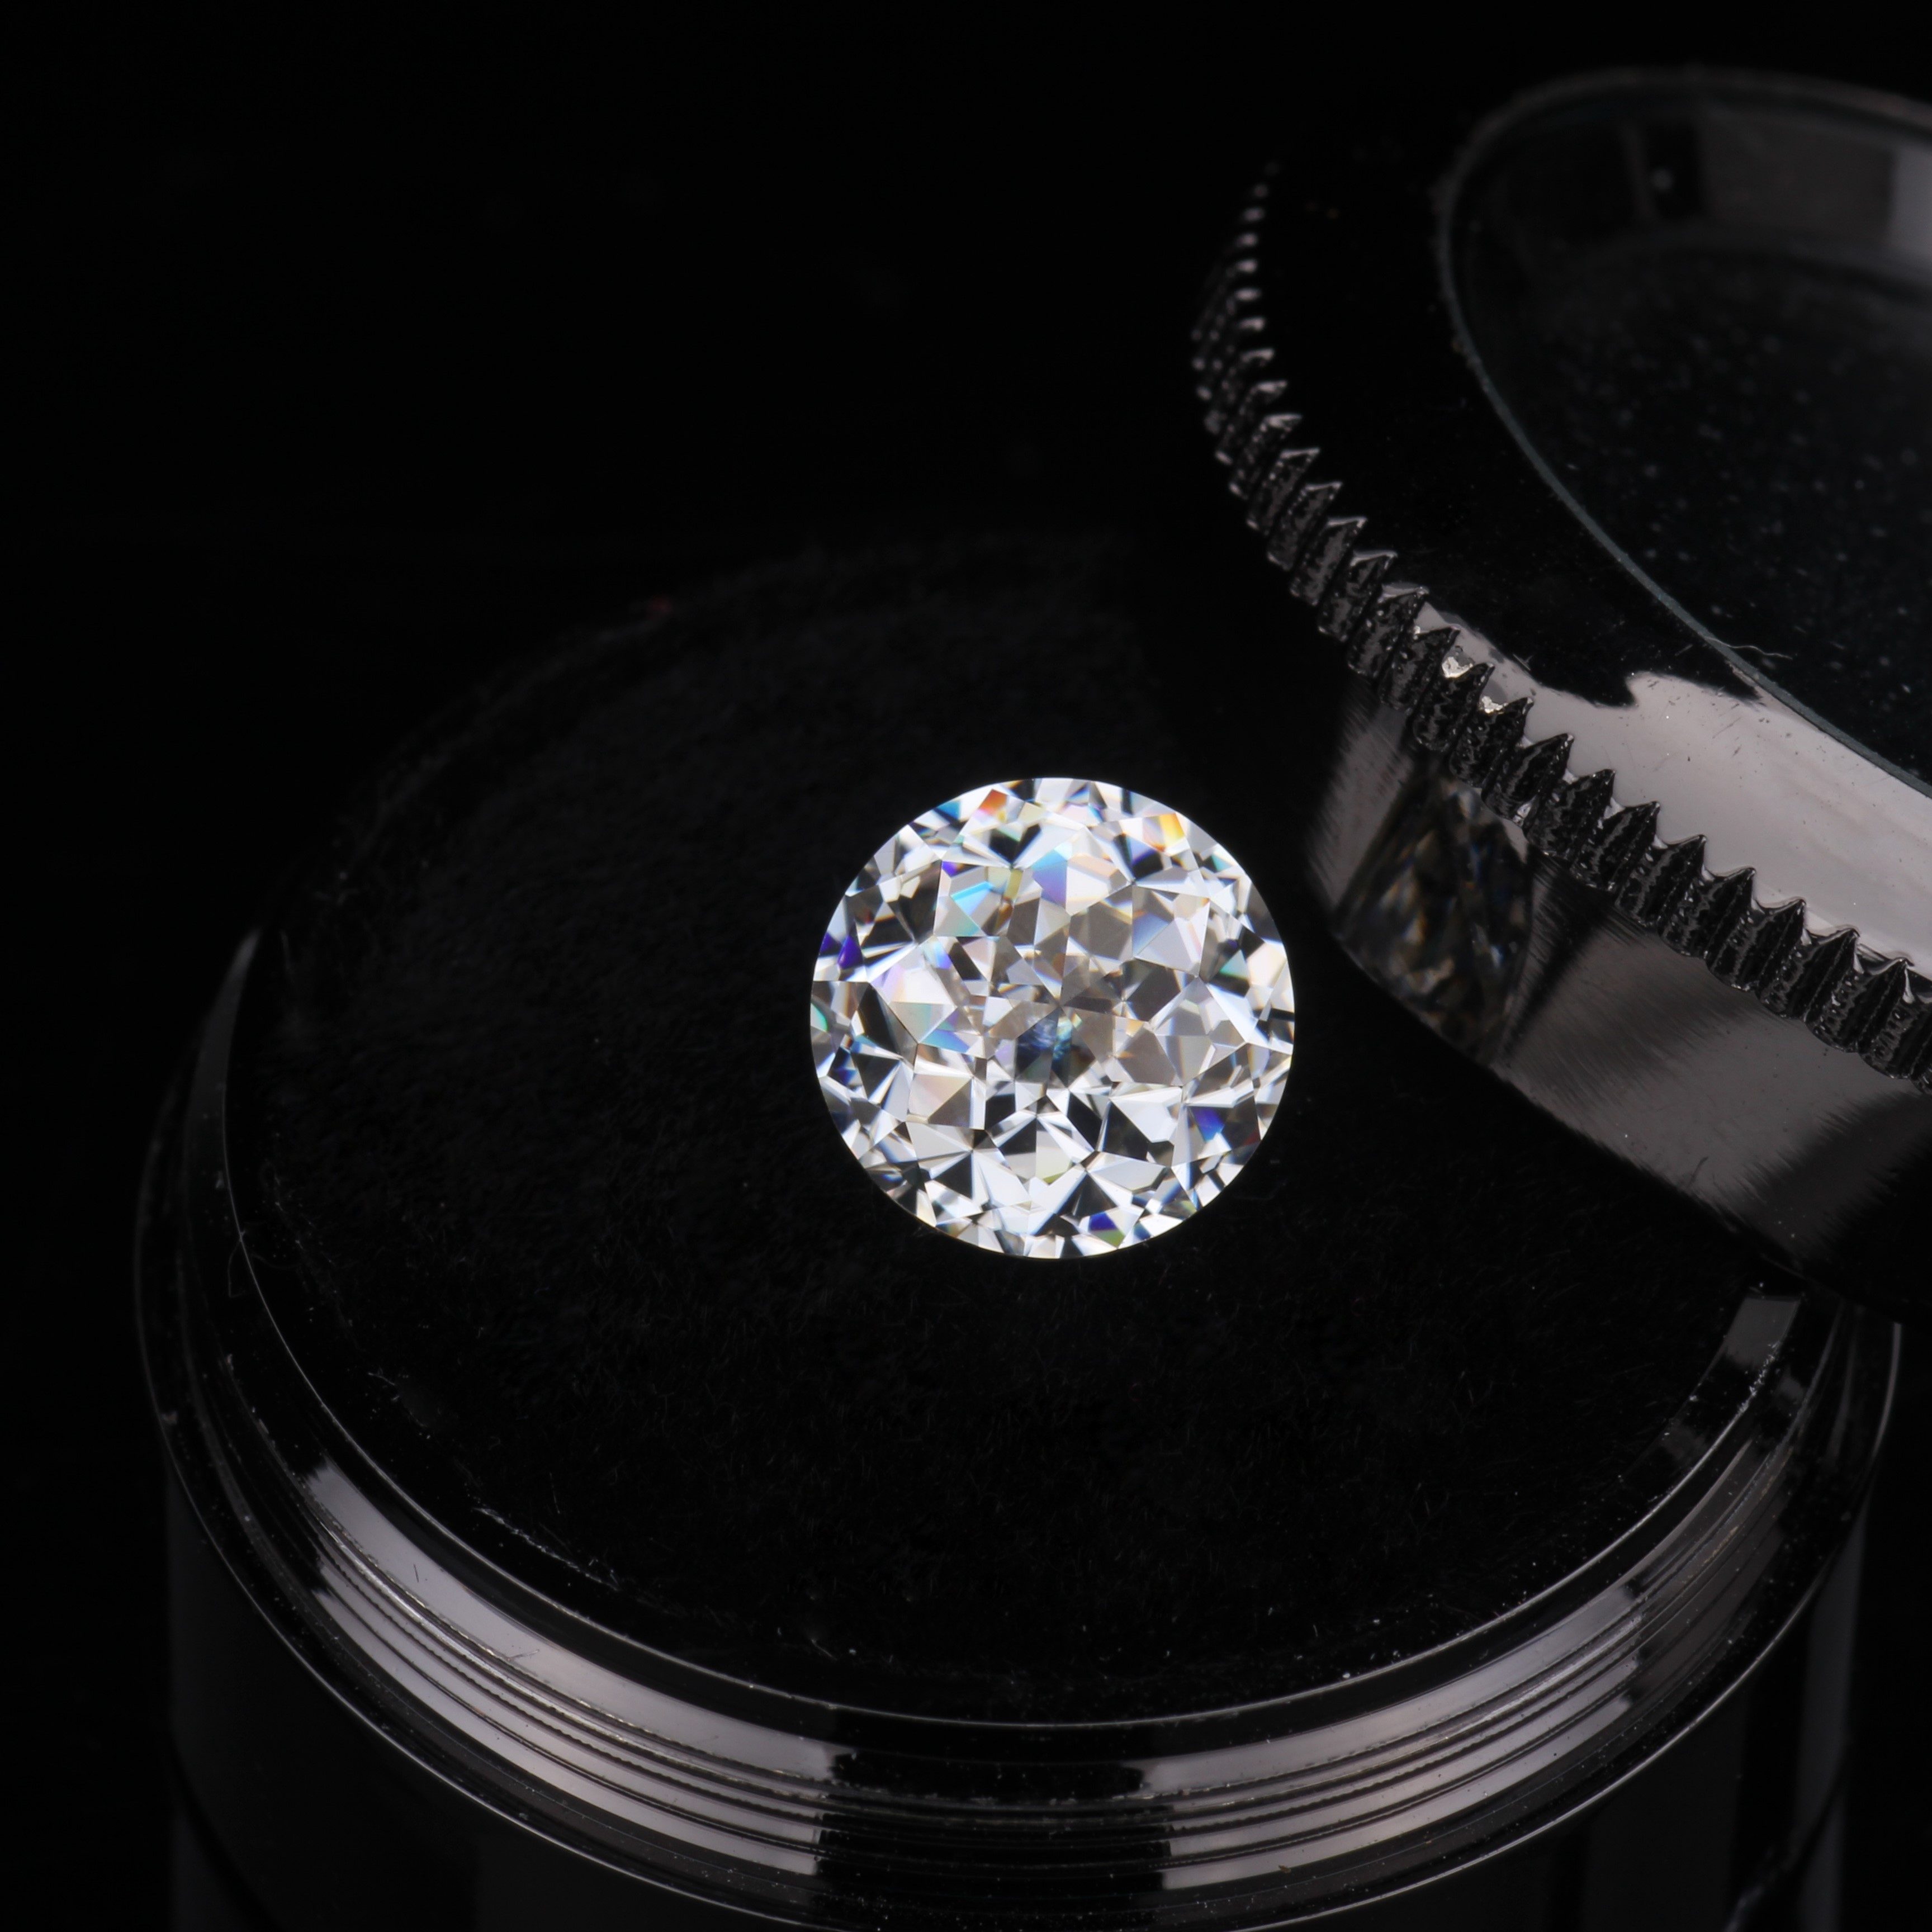 6.5mm 1 carat DEF White Color Round Jubilee Cut Loose Moissanites stone for Jewelry Making